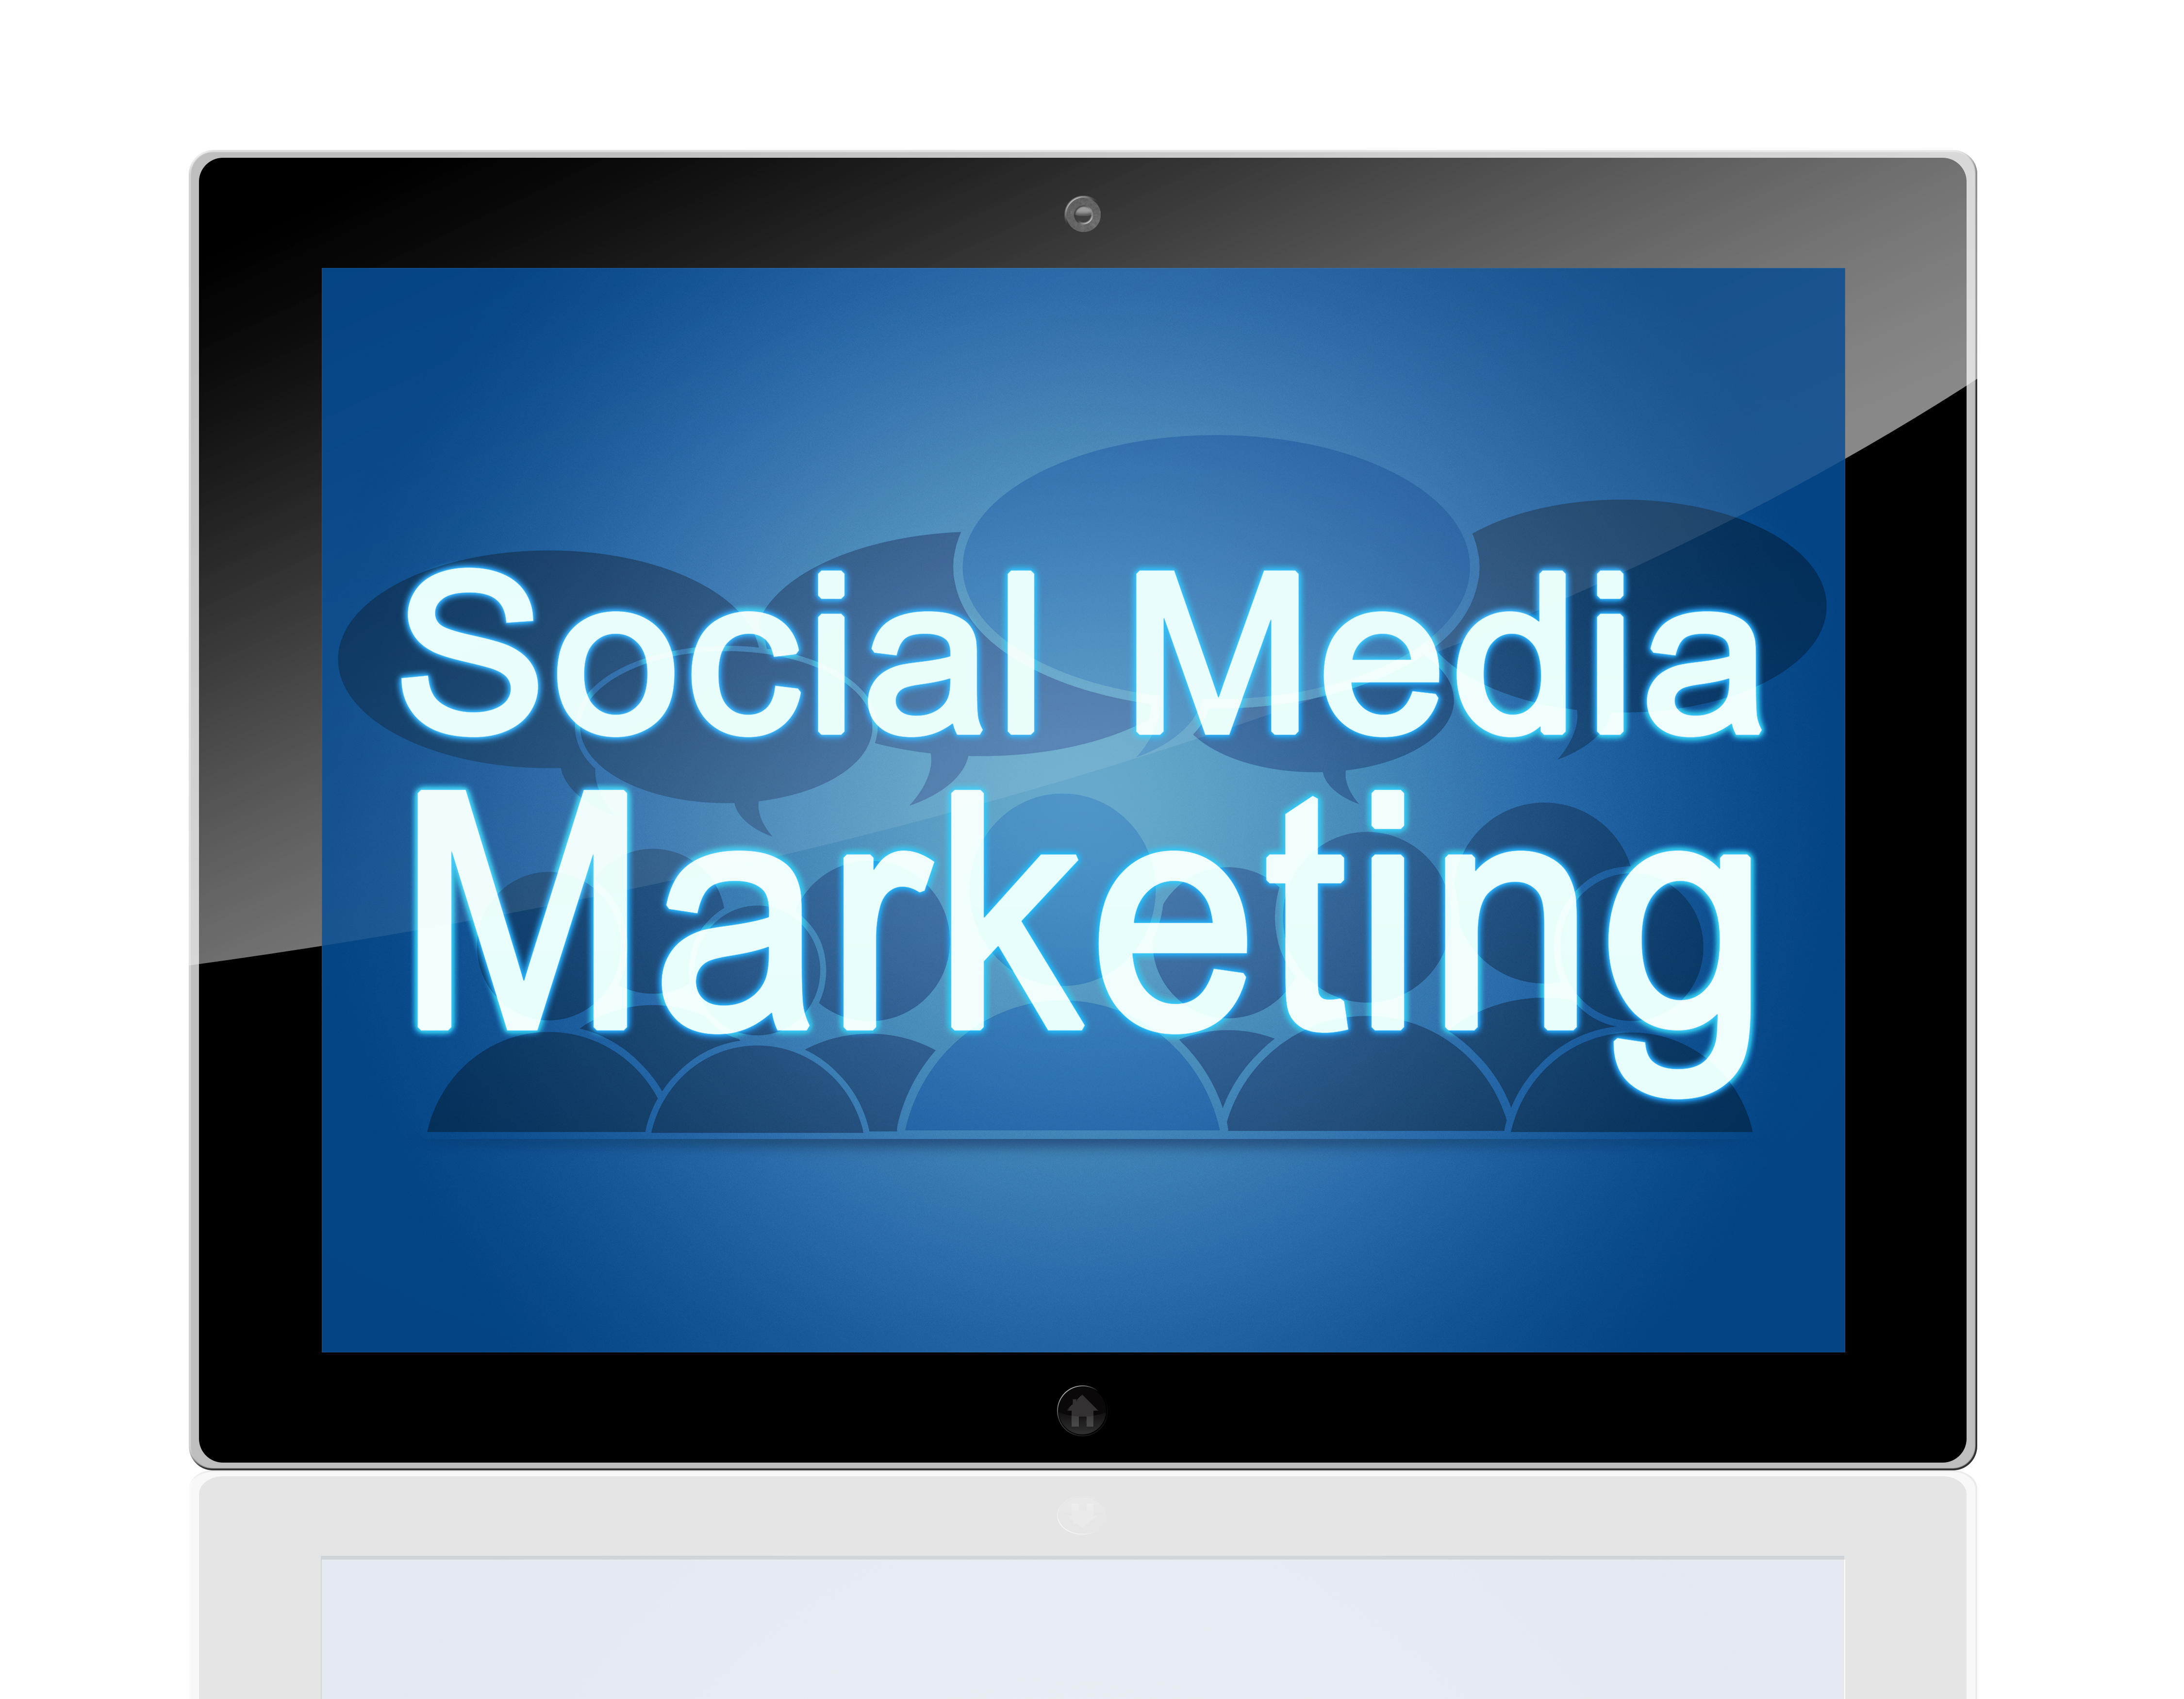 Richard Vanderhurst - Get The Most Out Of Your Social Media Marketing Plan